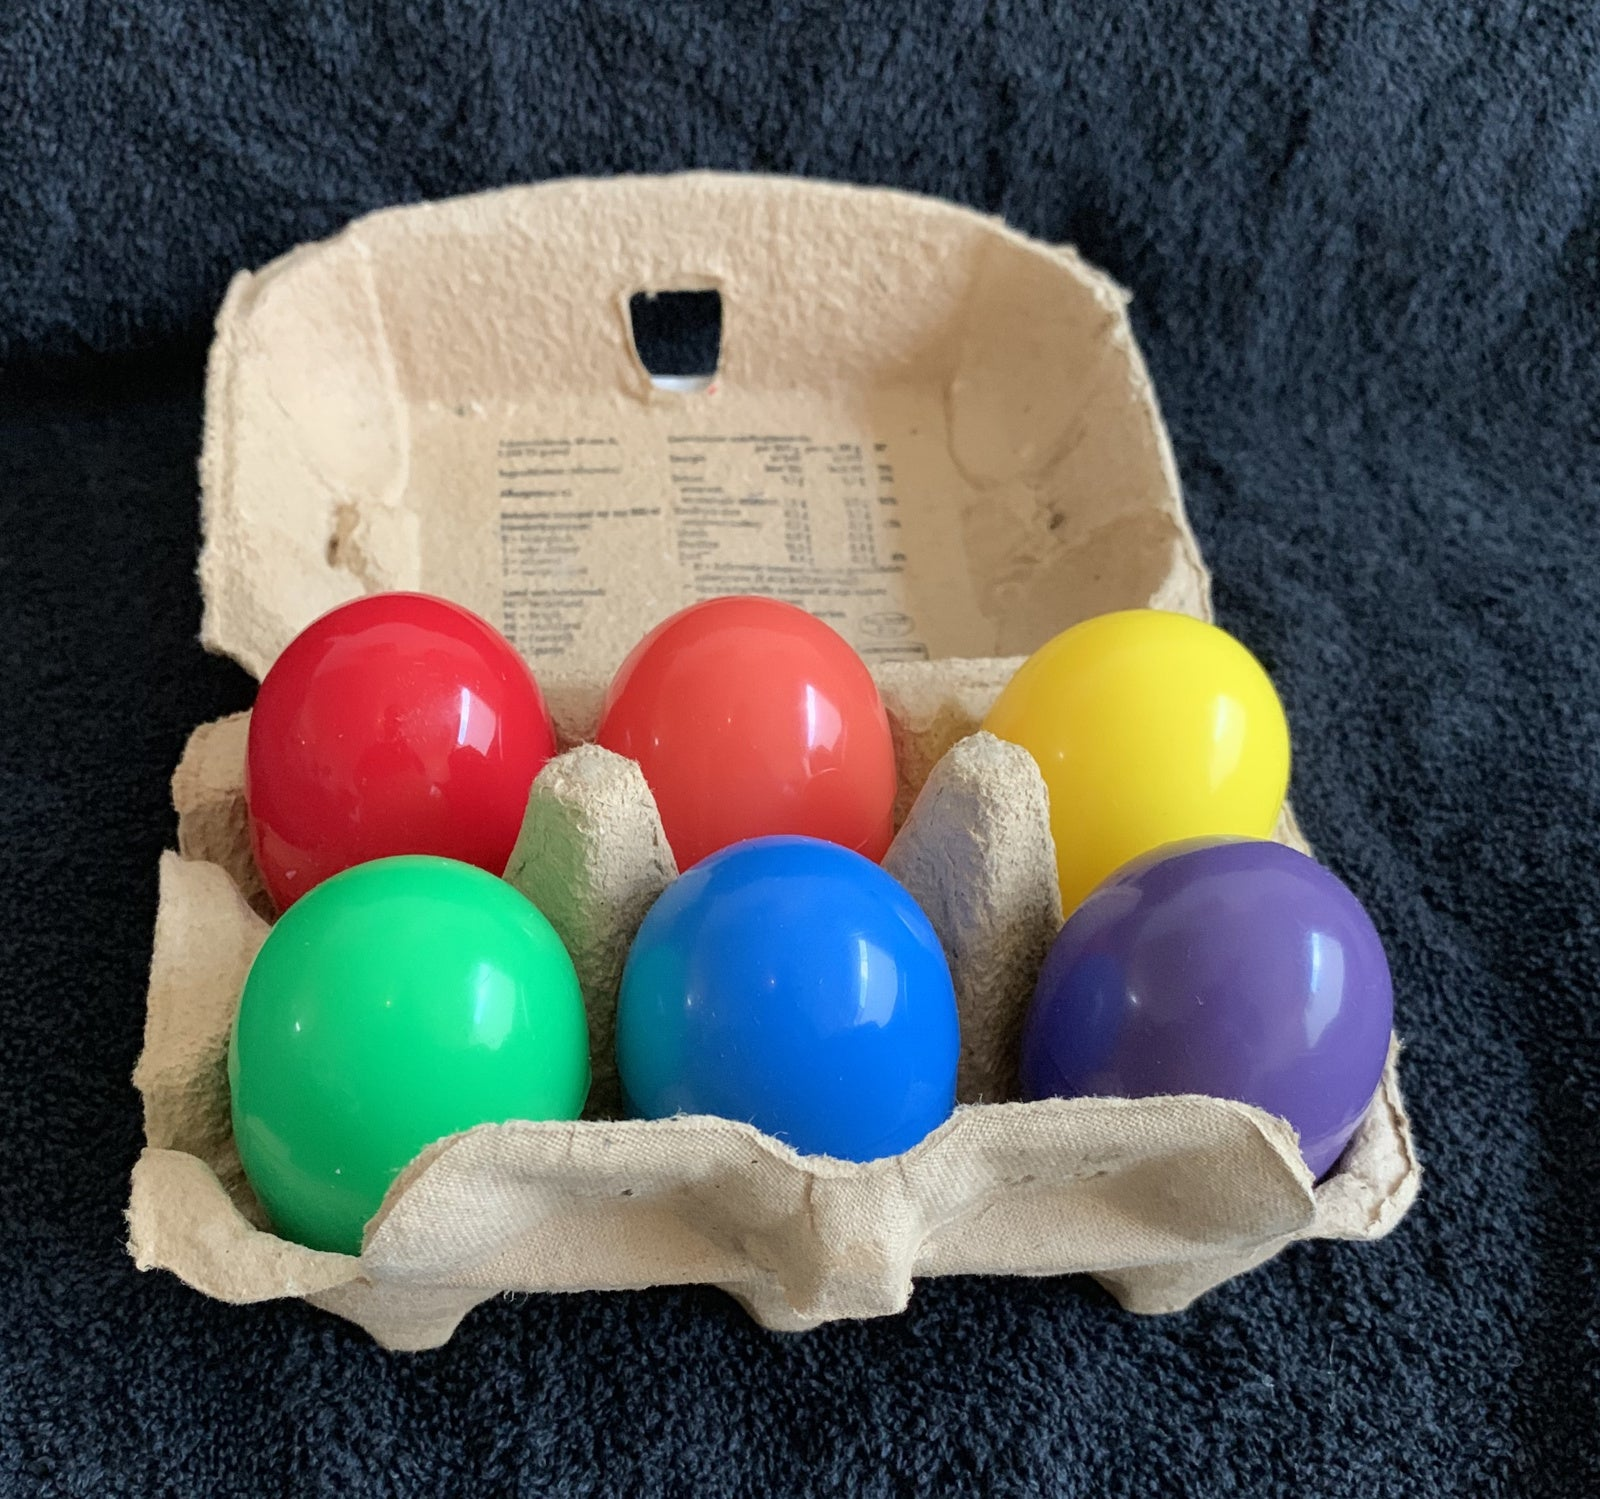 Chicken eggs, Rainbow pride clutch